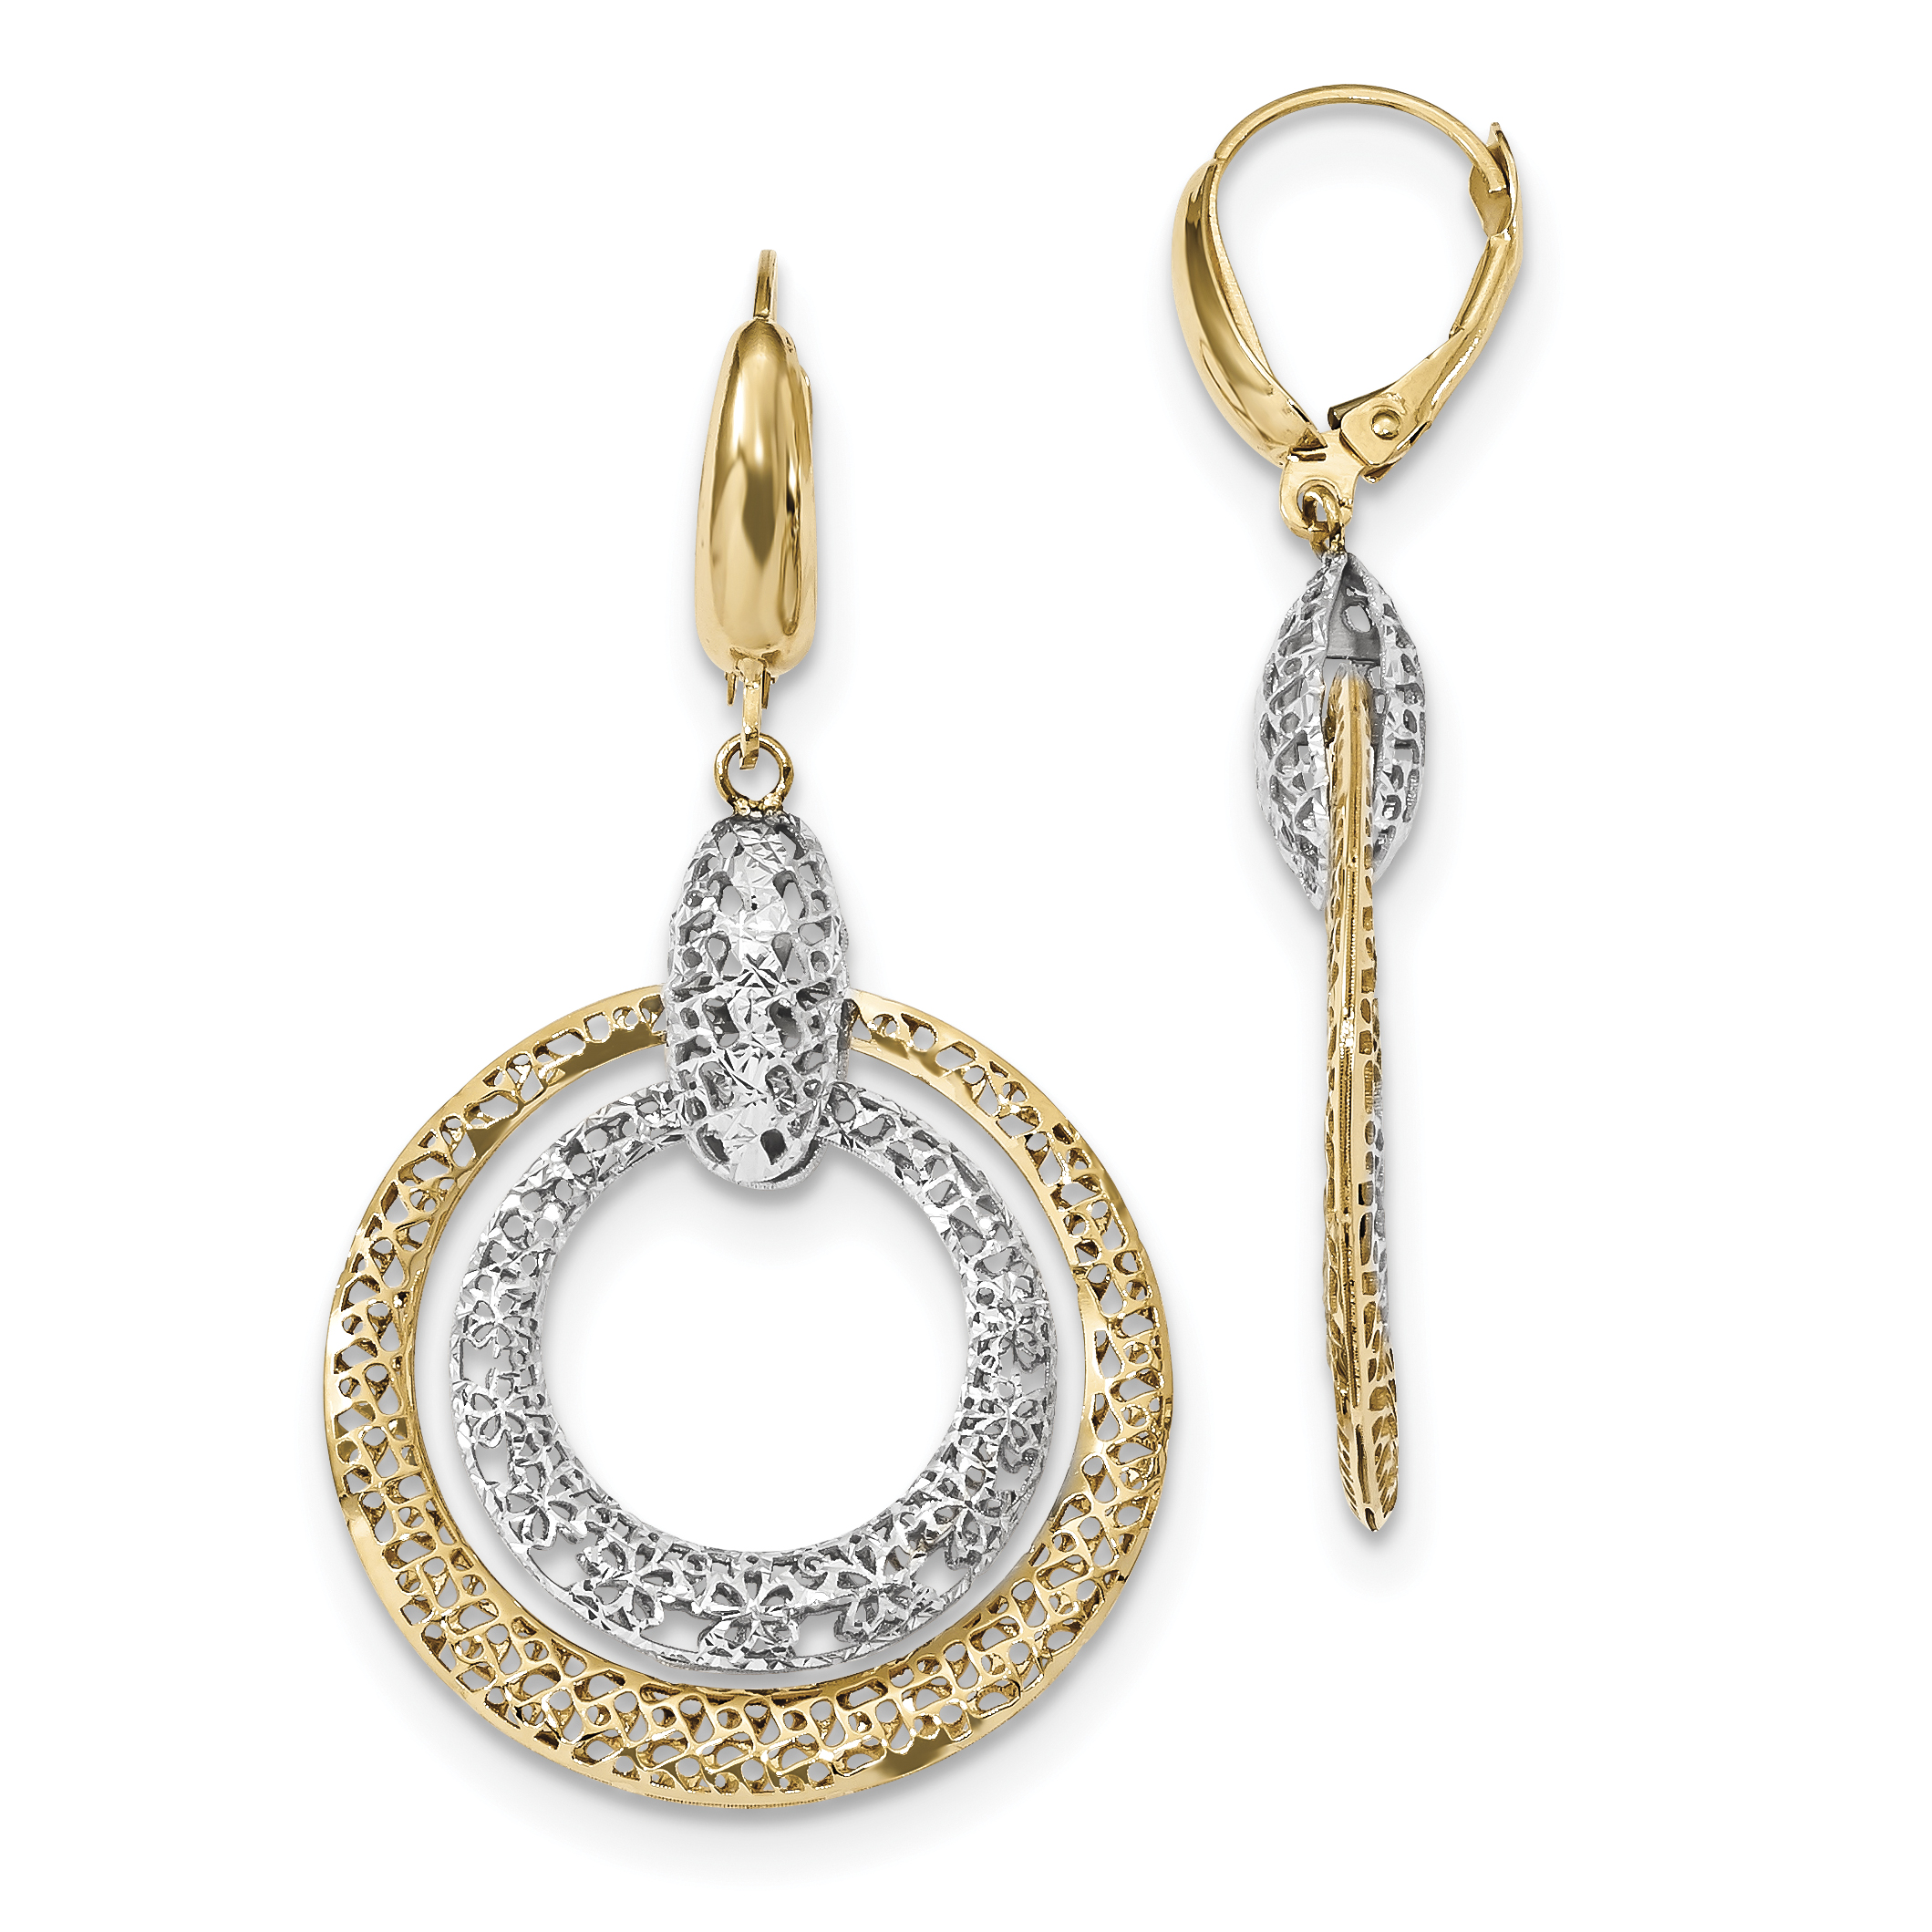 14k Yellow and White Gold Two-tone Polished and Diamond Cut Circle Dangle Leverback Earrings Length 49mm - image 2 de 2